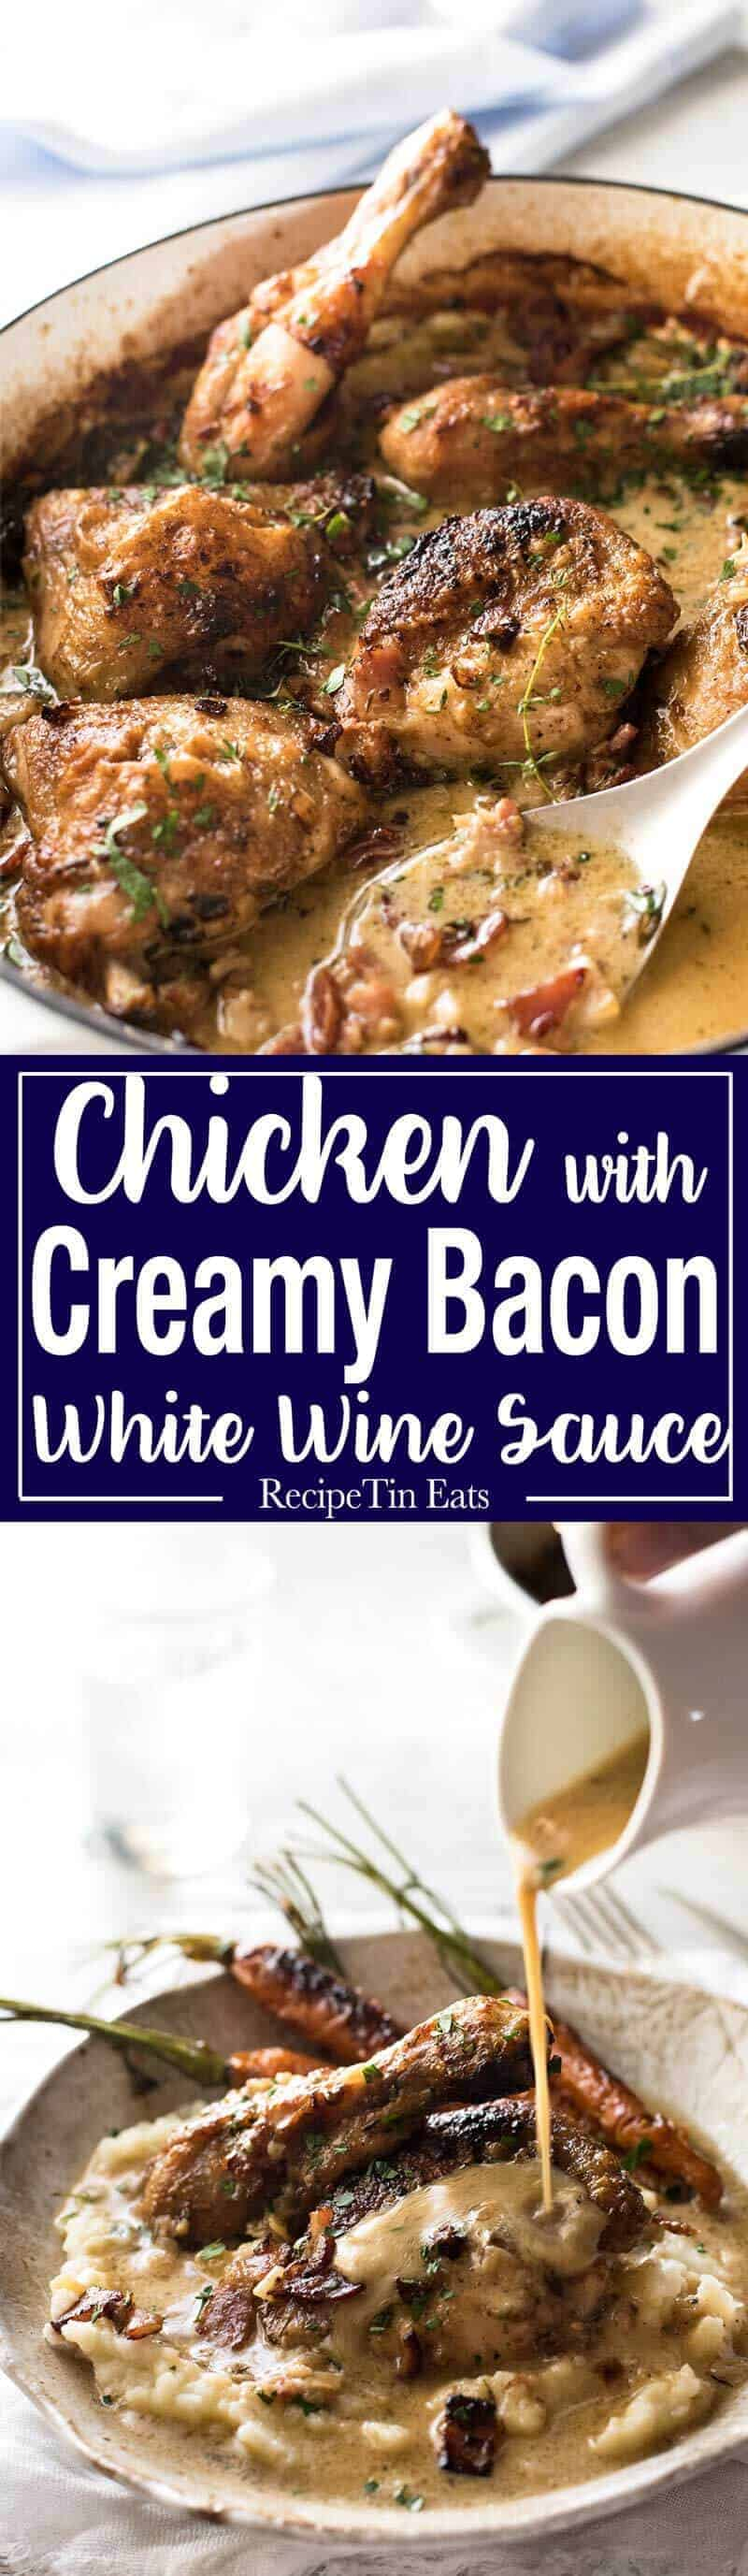 Chicken with Creamy White Wine Sauce and Bacon - So easy to prepare, then just let it braise in the oven until the chicken is tender. The sauce is incredible! recipetineats.com